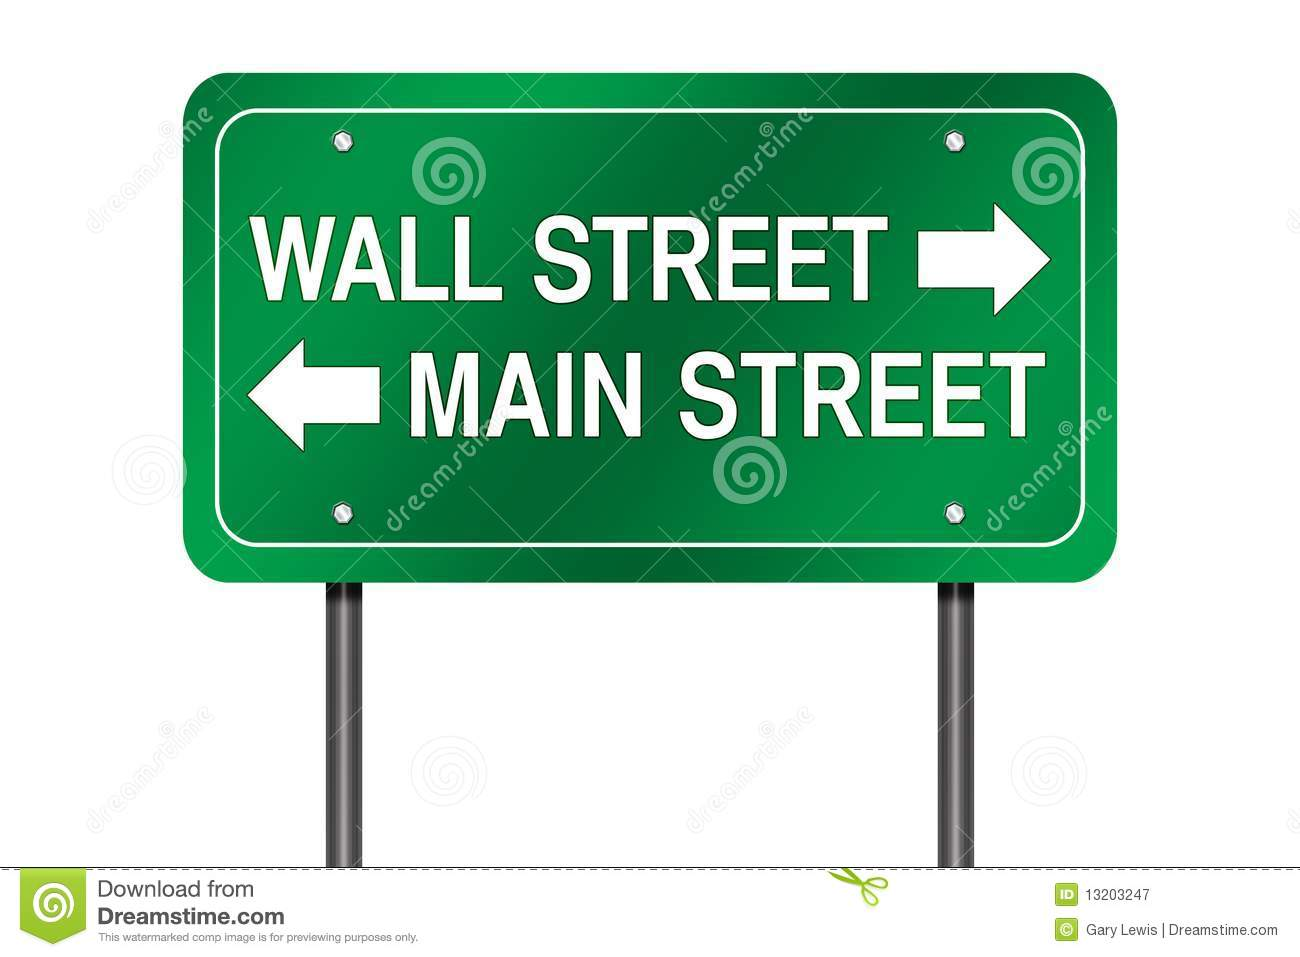 Wall and Main street sign